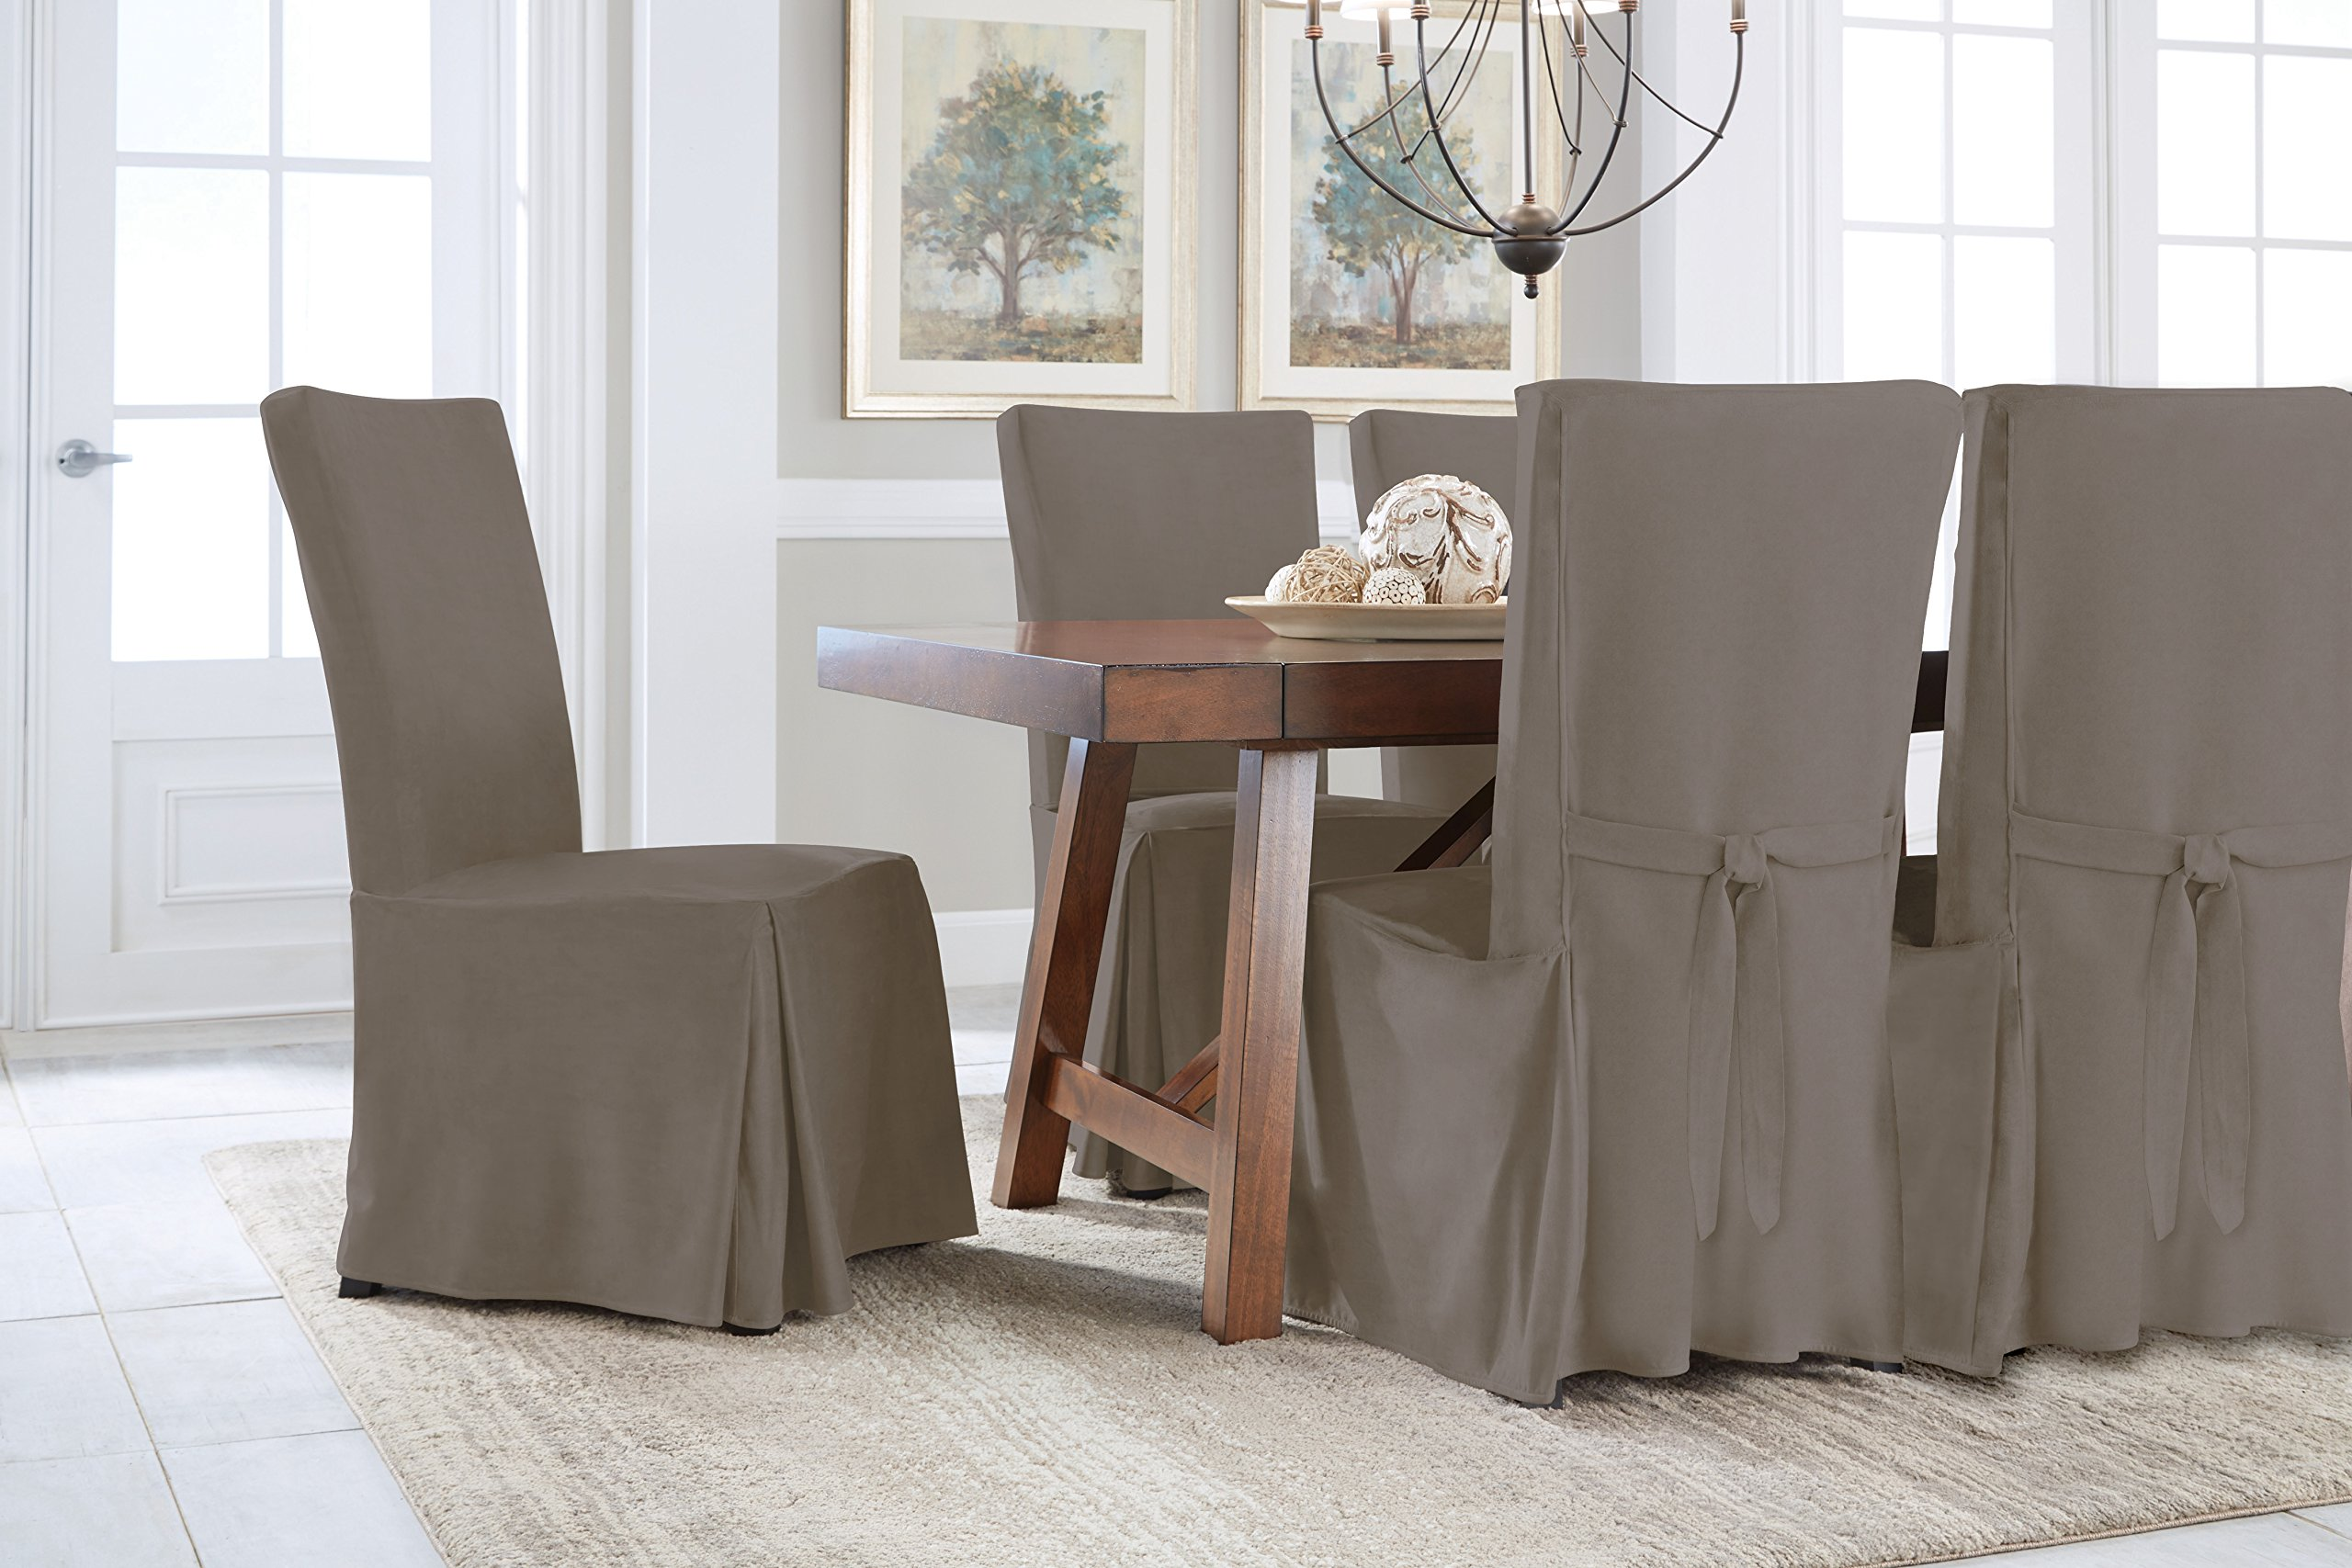 Serta Relaxed Fit Smooth Suede Furniture Slipcover for Regular Dining Chair, Grey by Serta